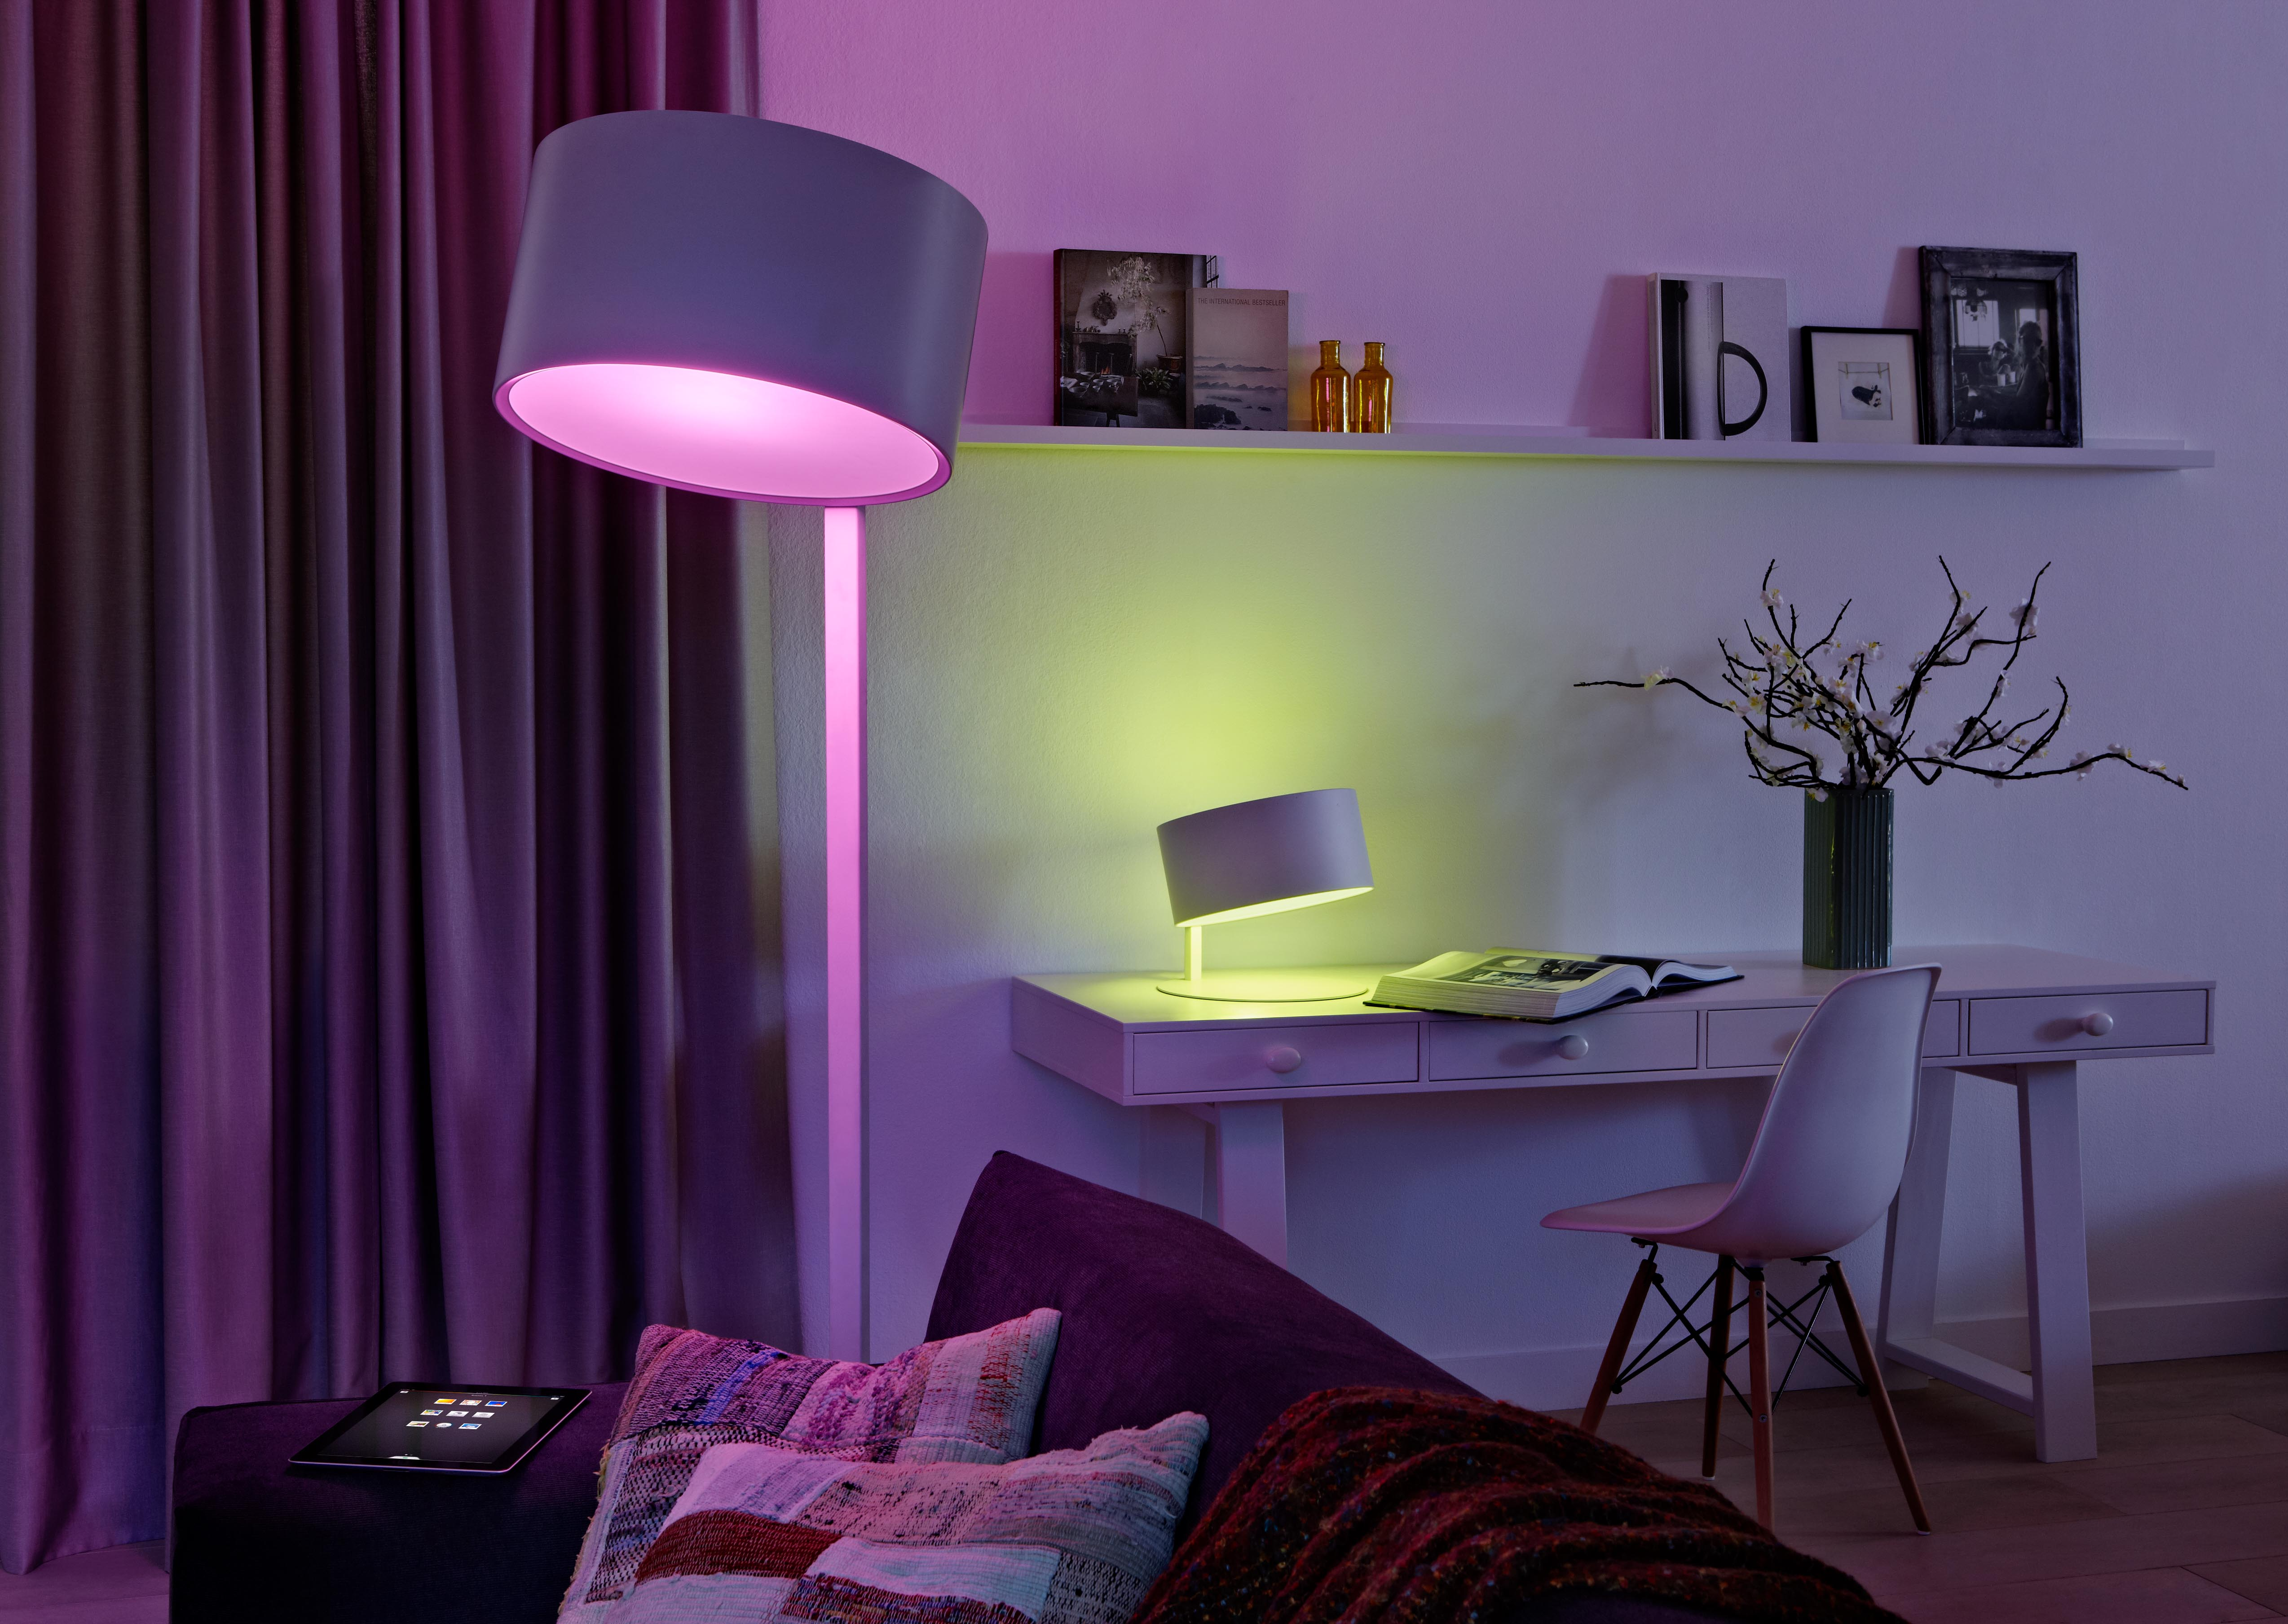 philips hue desk color setting - Philips Hue Color